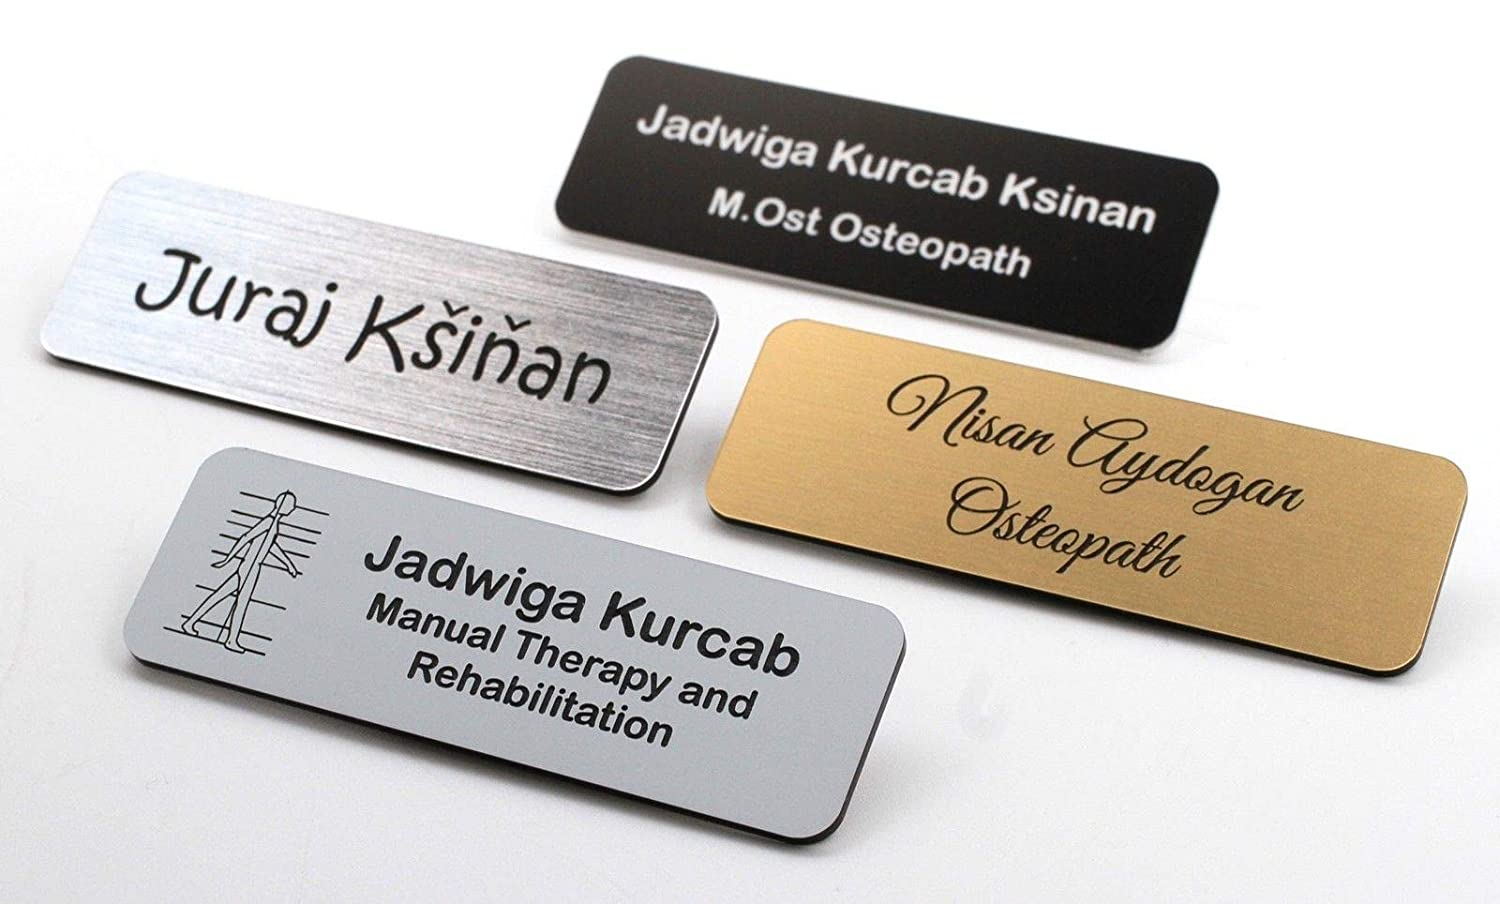 Personalized Premium Name Badge Staff ID Tag Custom Bespoke Engraved with Pin CustomDesign.Shop